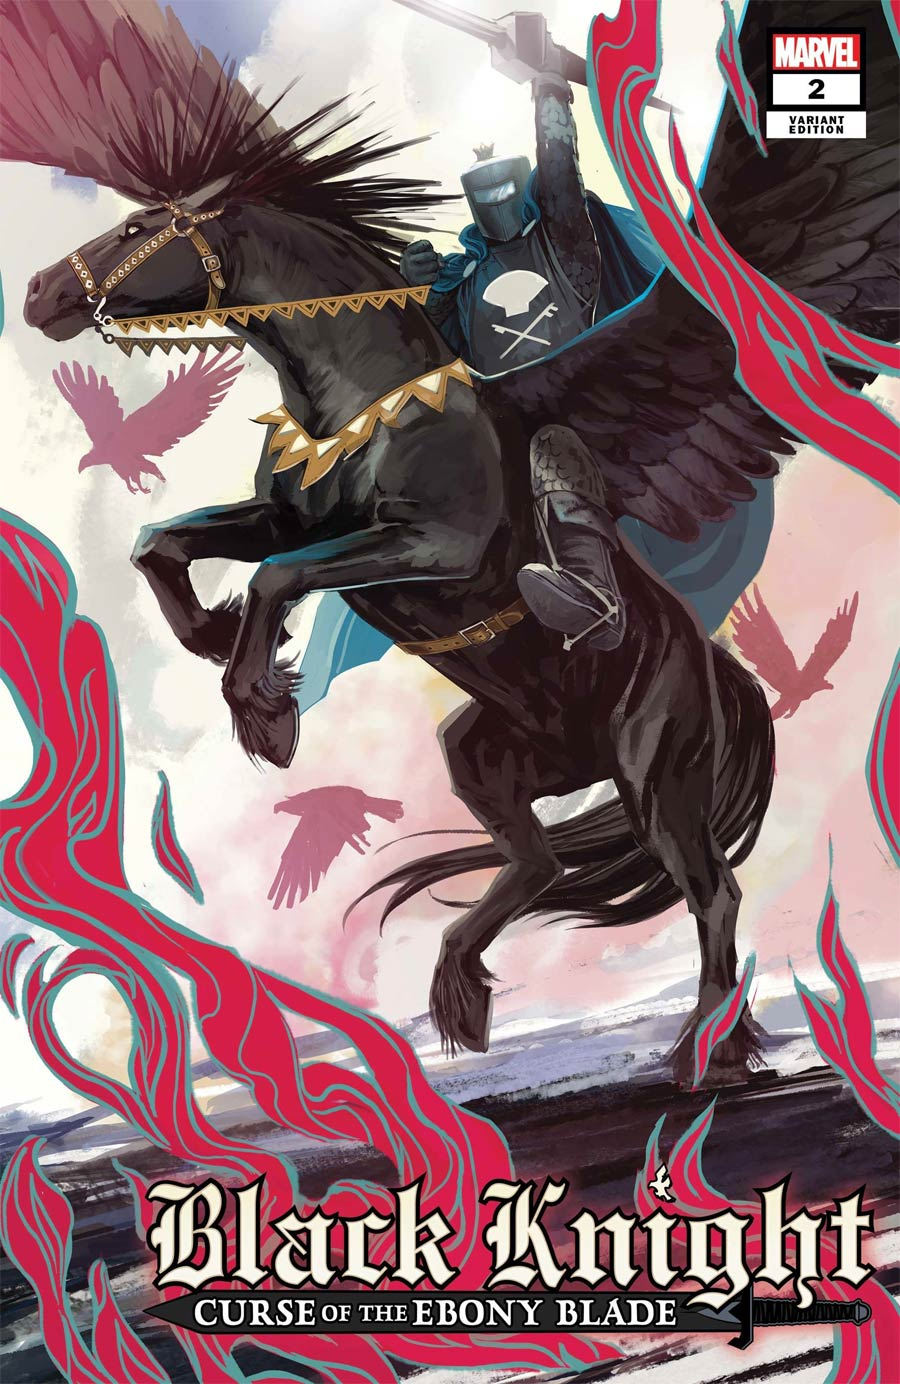 Black Knight Curse Of The Ebony Blade #2 Cover C Incentive Stephanie Hans Legend Of The Black Knight Variant Cover